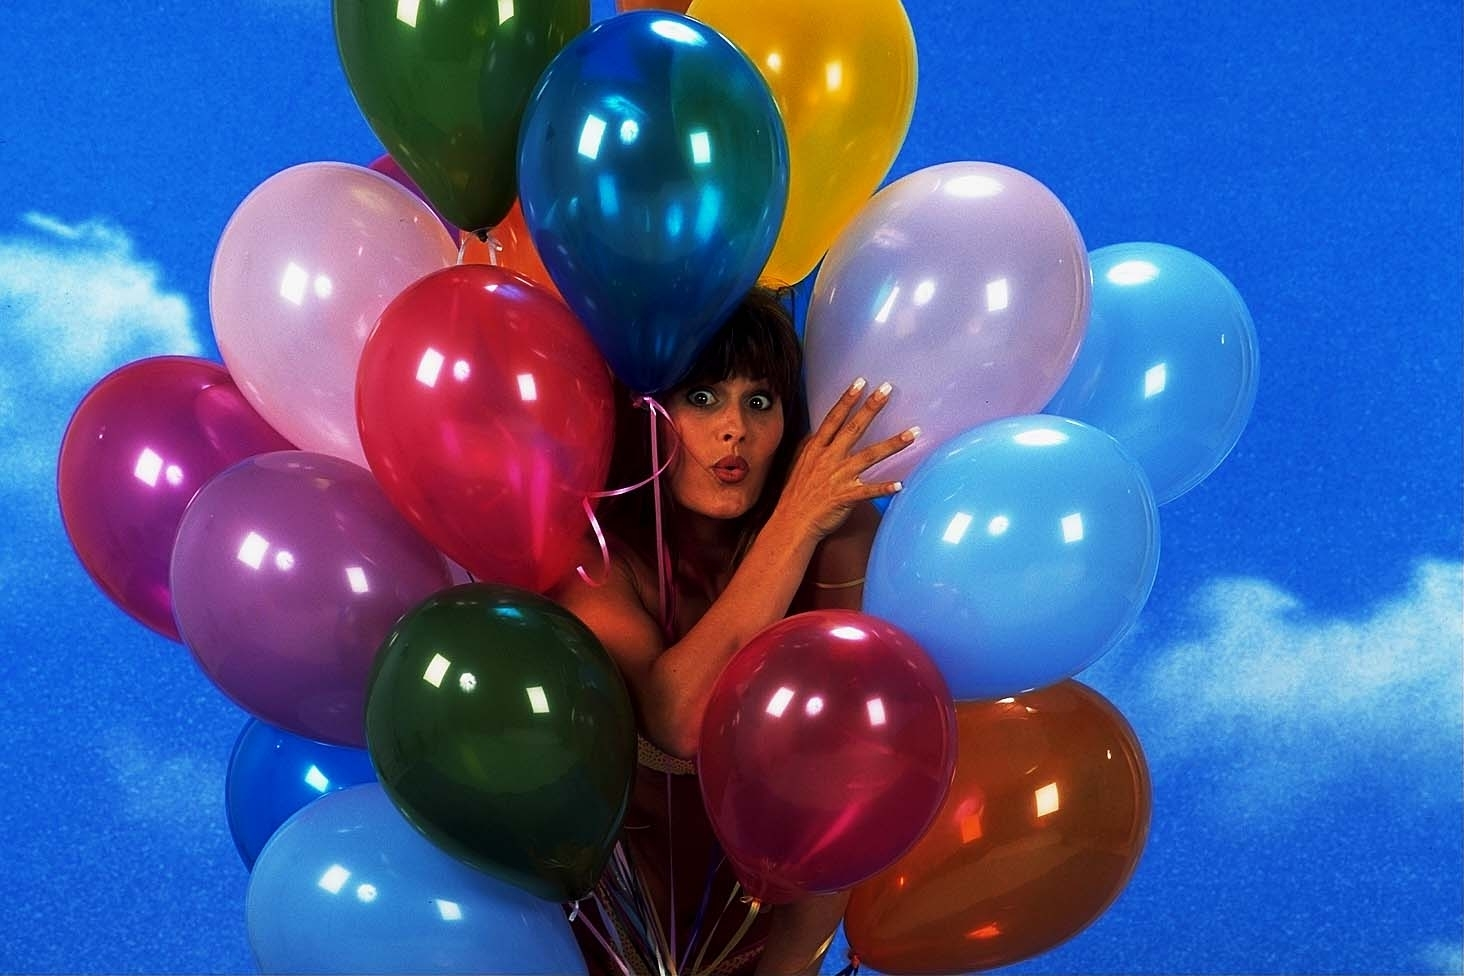 bigstockphoto_Balloon_Lady